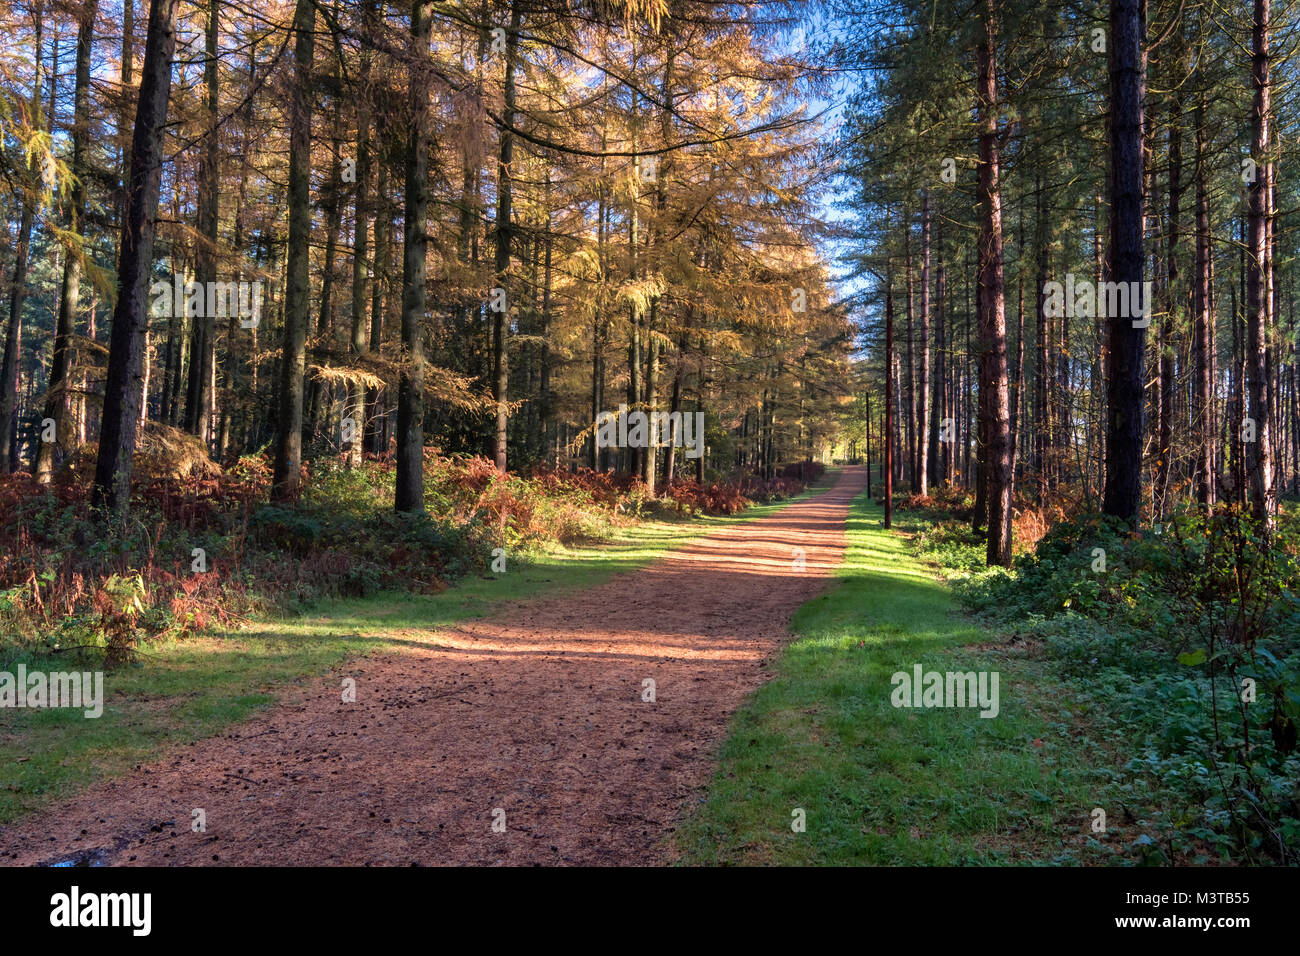 Autumn in Delamere Forest, Delamere, Cheshire, England, UK - Stock Image